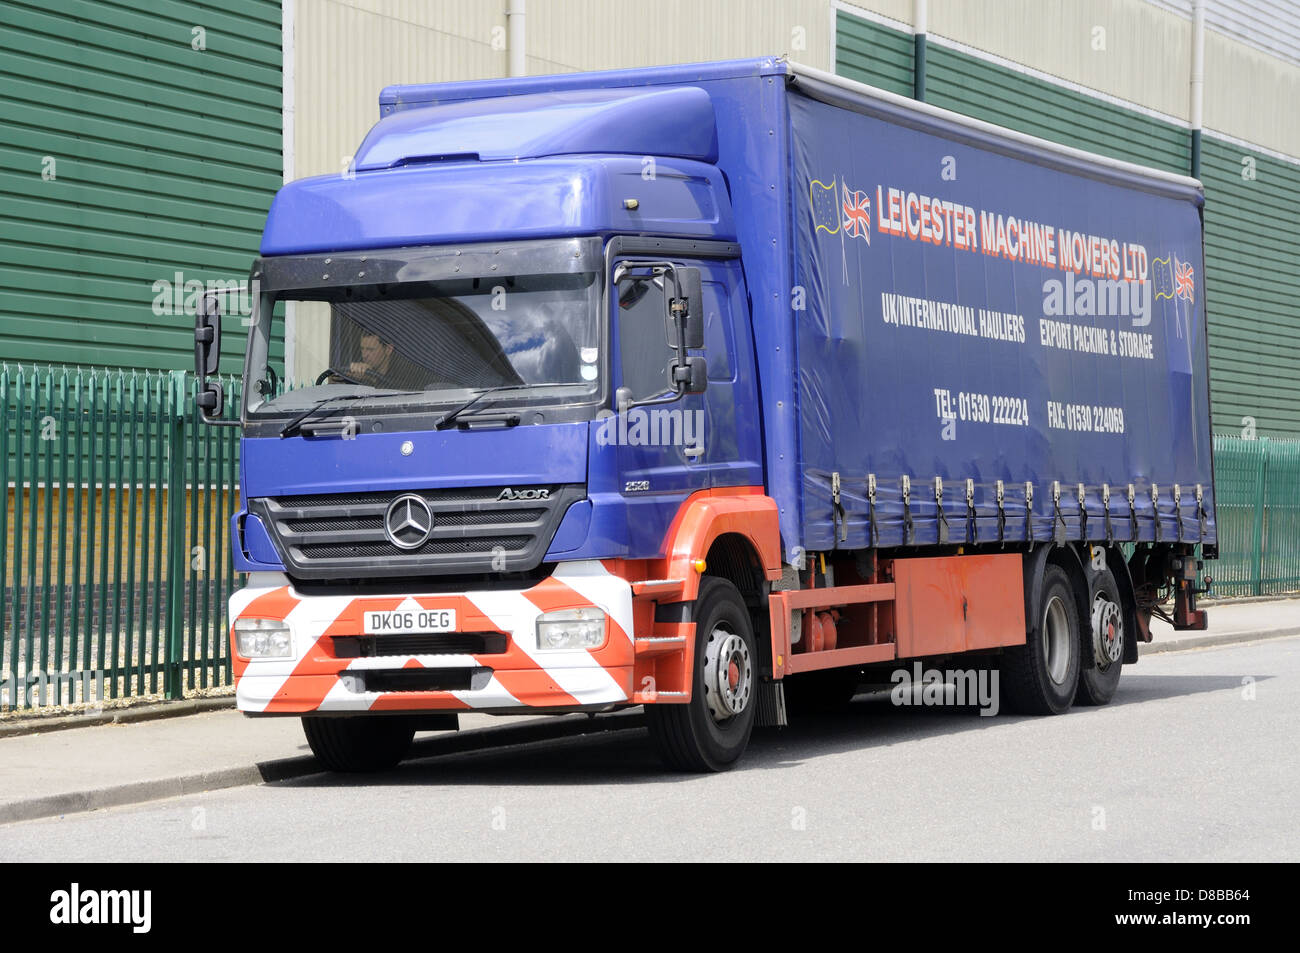 A Mercedes Axor 2528 in the livery of Leicester Machine Movers, in  Leicester, Leicestershire